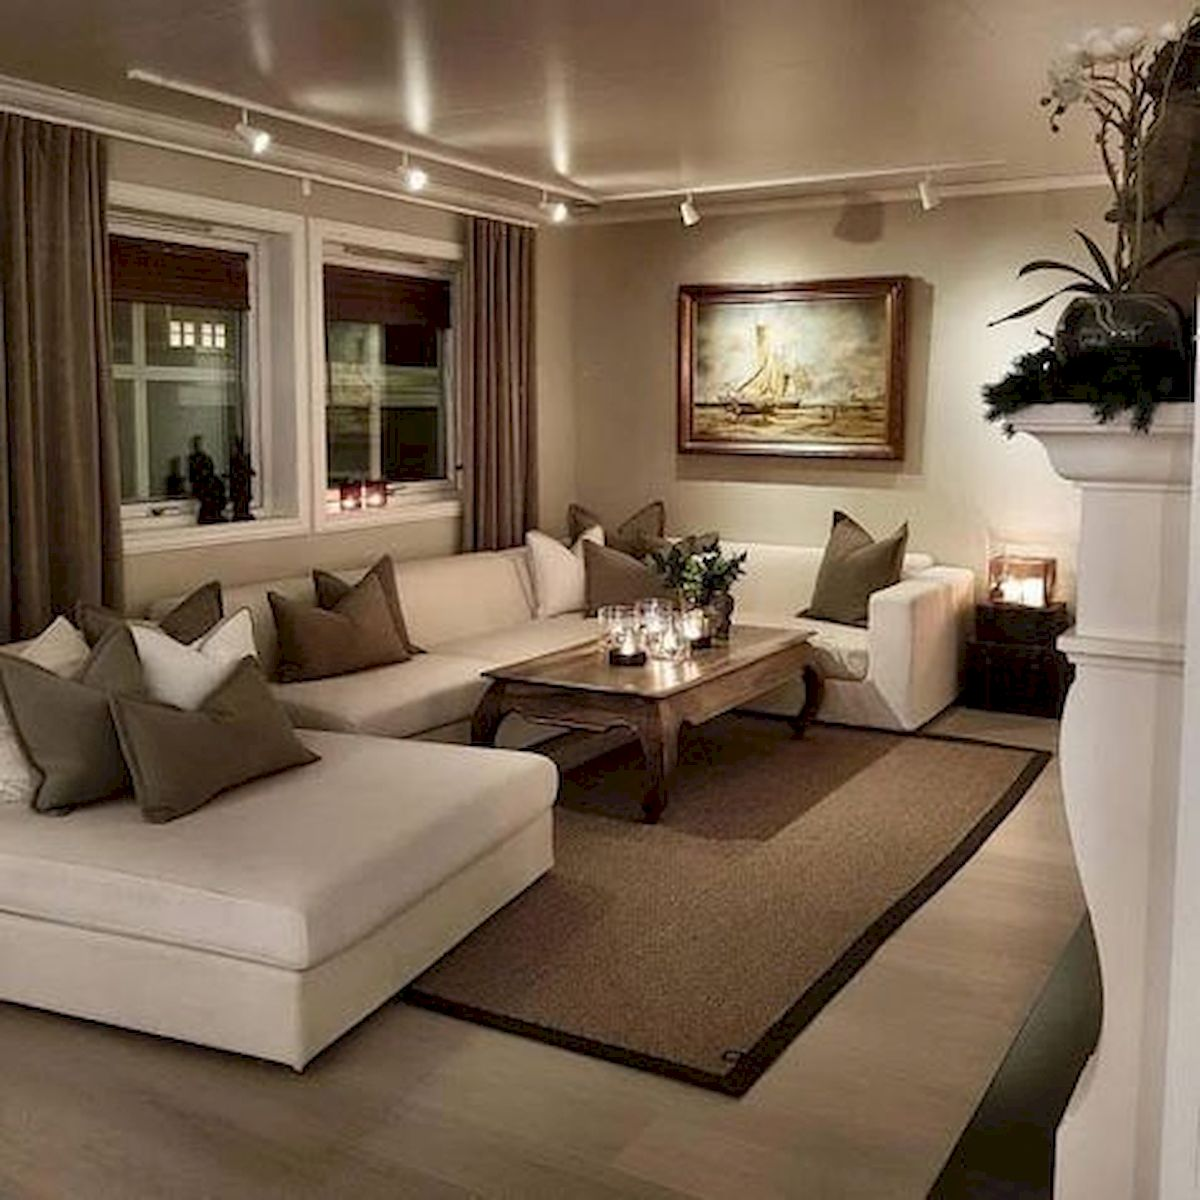 50 Gorgeous Living Room Decor and Design Ideas (31)